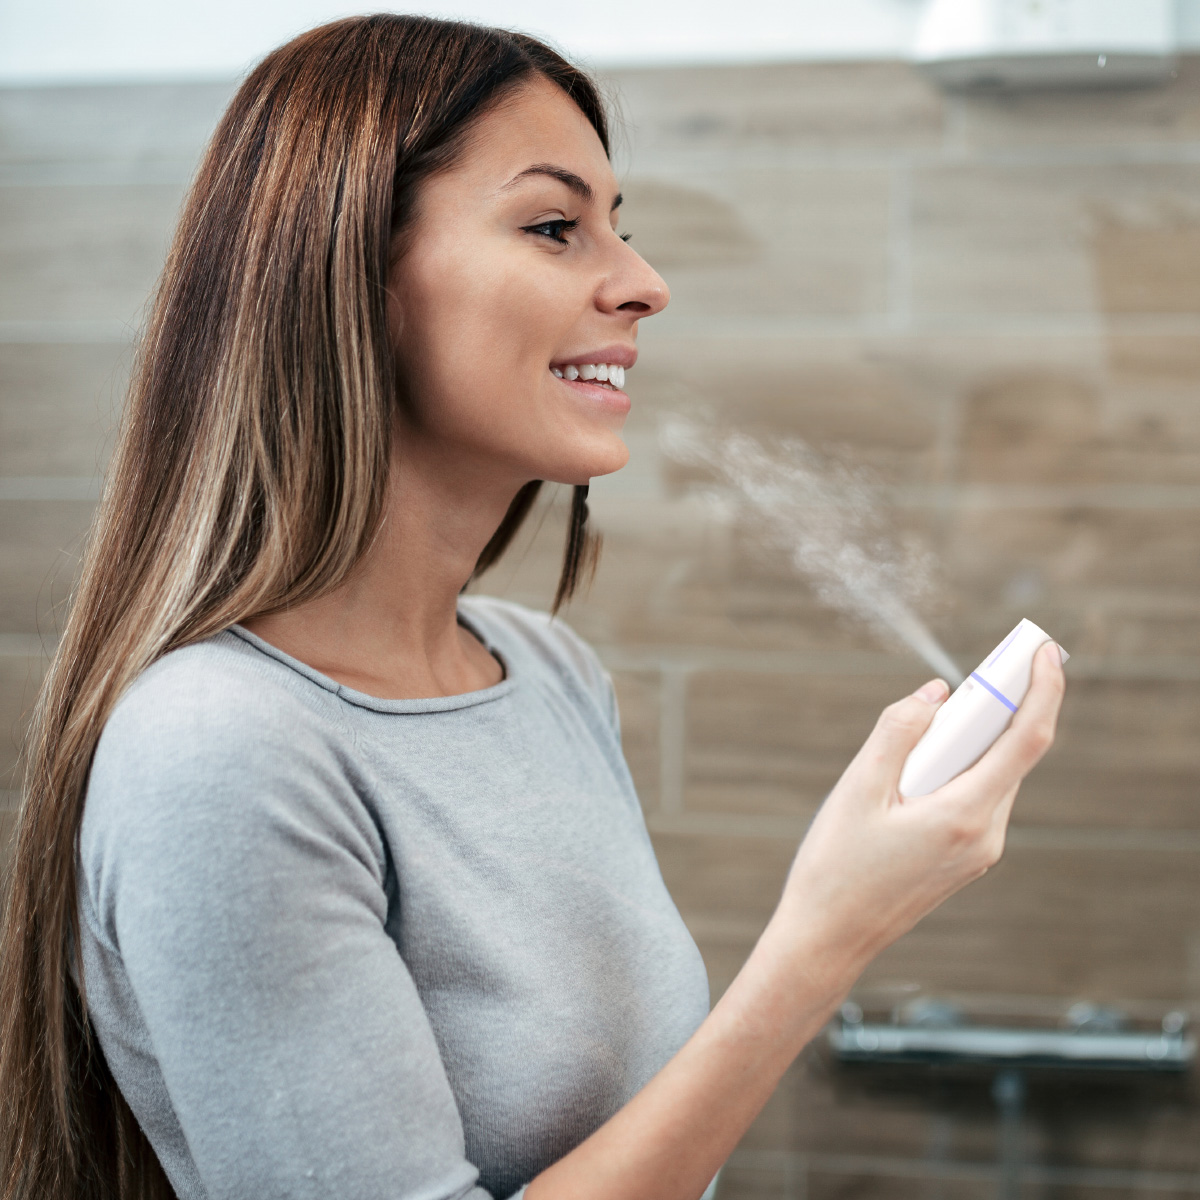 Smiling young woman applying make-up in the bathroom, side view.